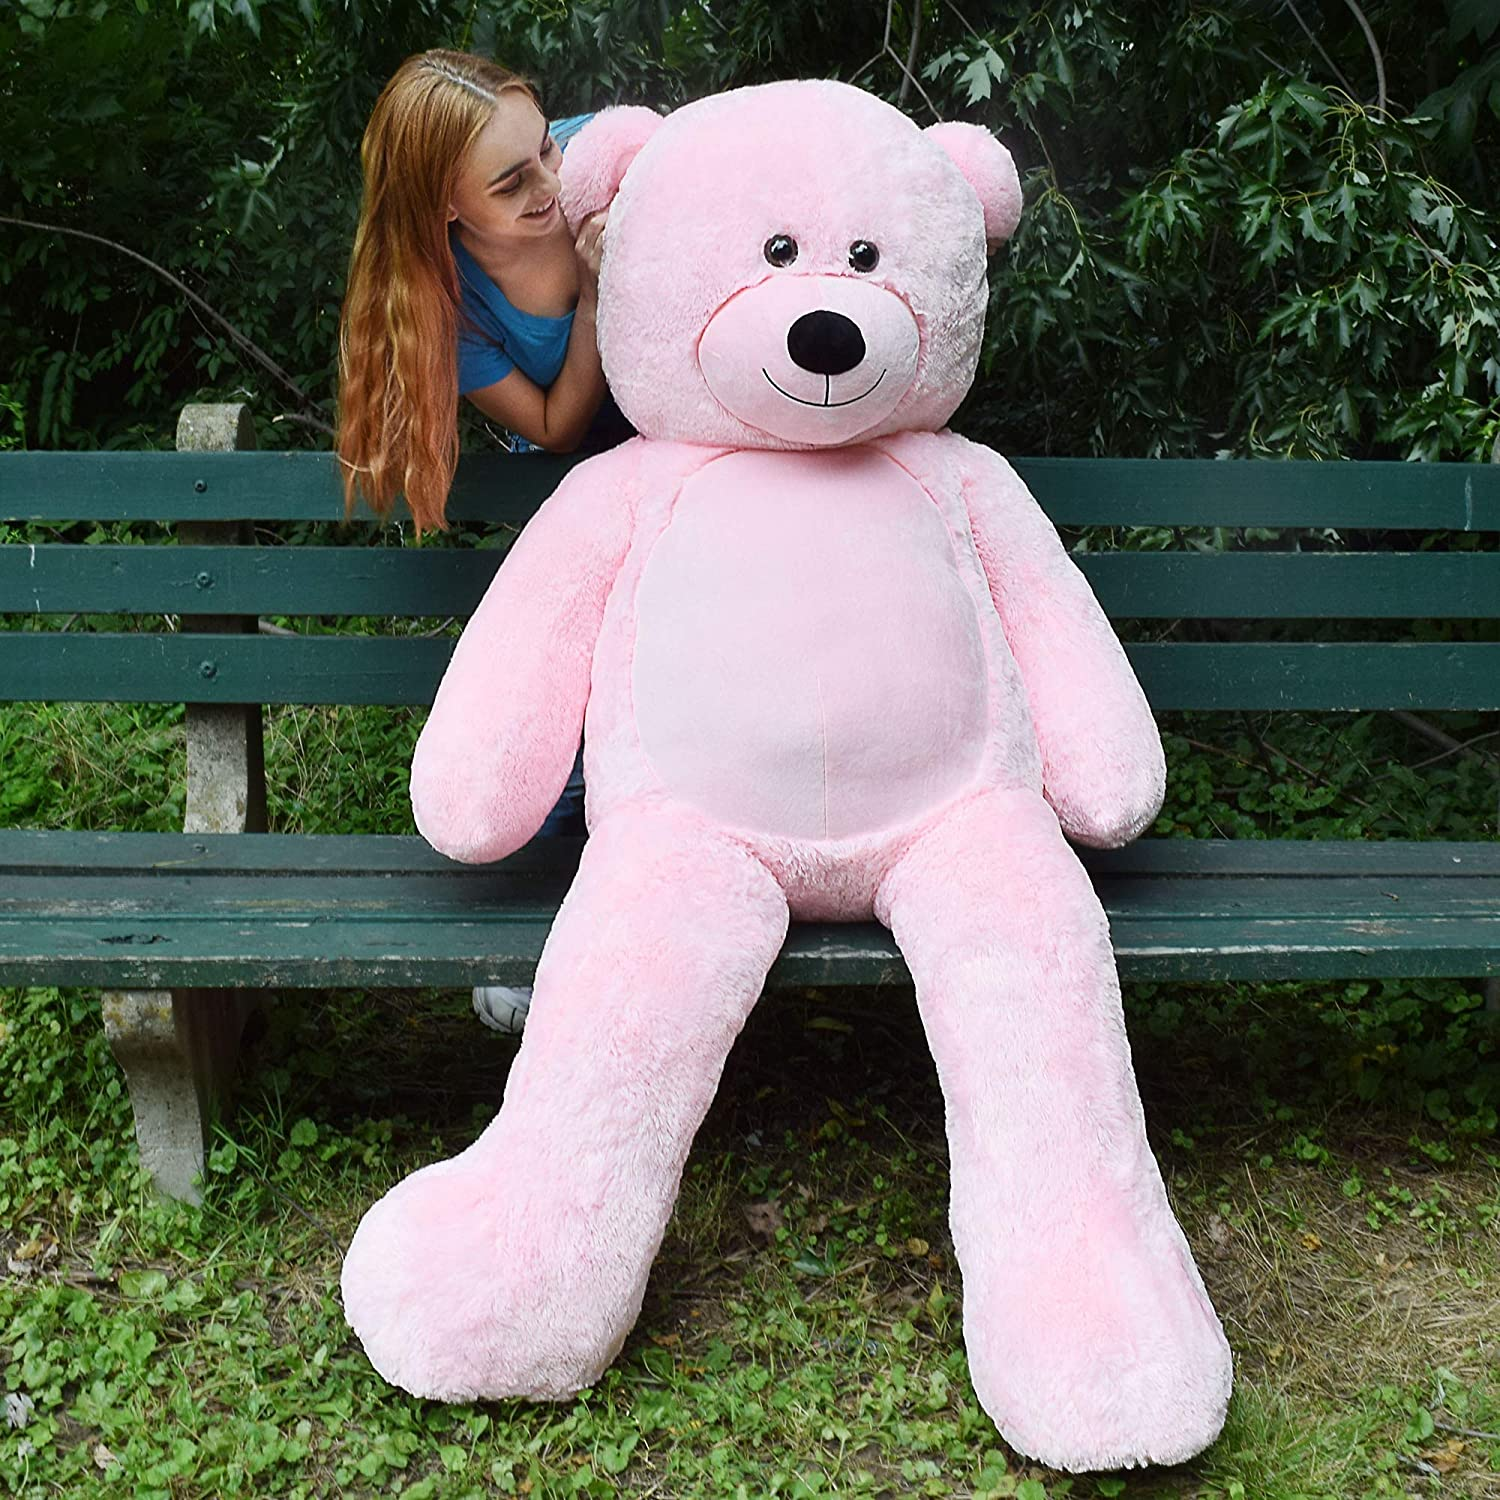 760ecb37de6 Amazon.com  WOWMAX 6 Foot Giant Huge Life Size Teddy Bear Danny Cuddly  Stuffed Plush Animals Teddy Bear Toy Doll for Birthday Christmas Pink 72  Inches  Toys ...